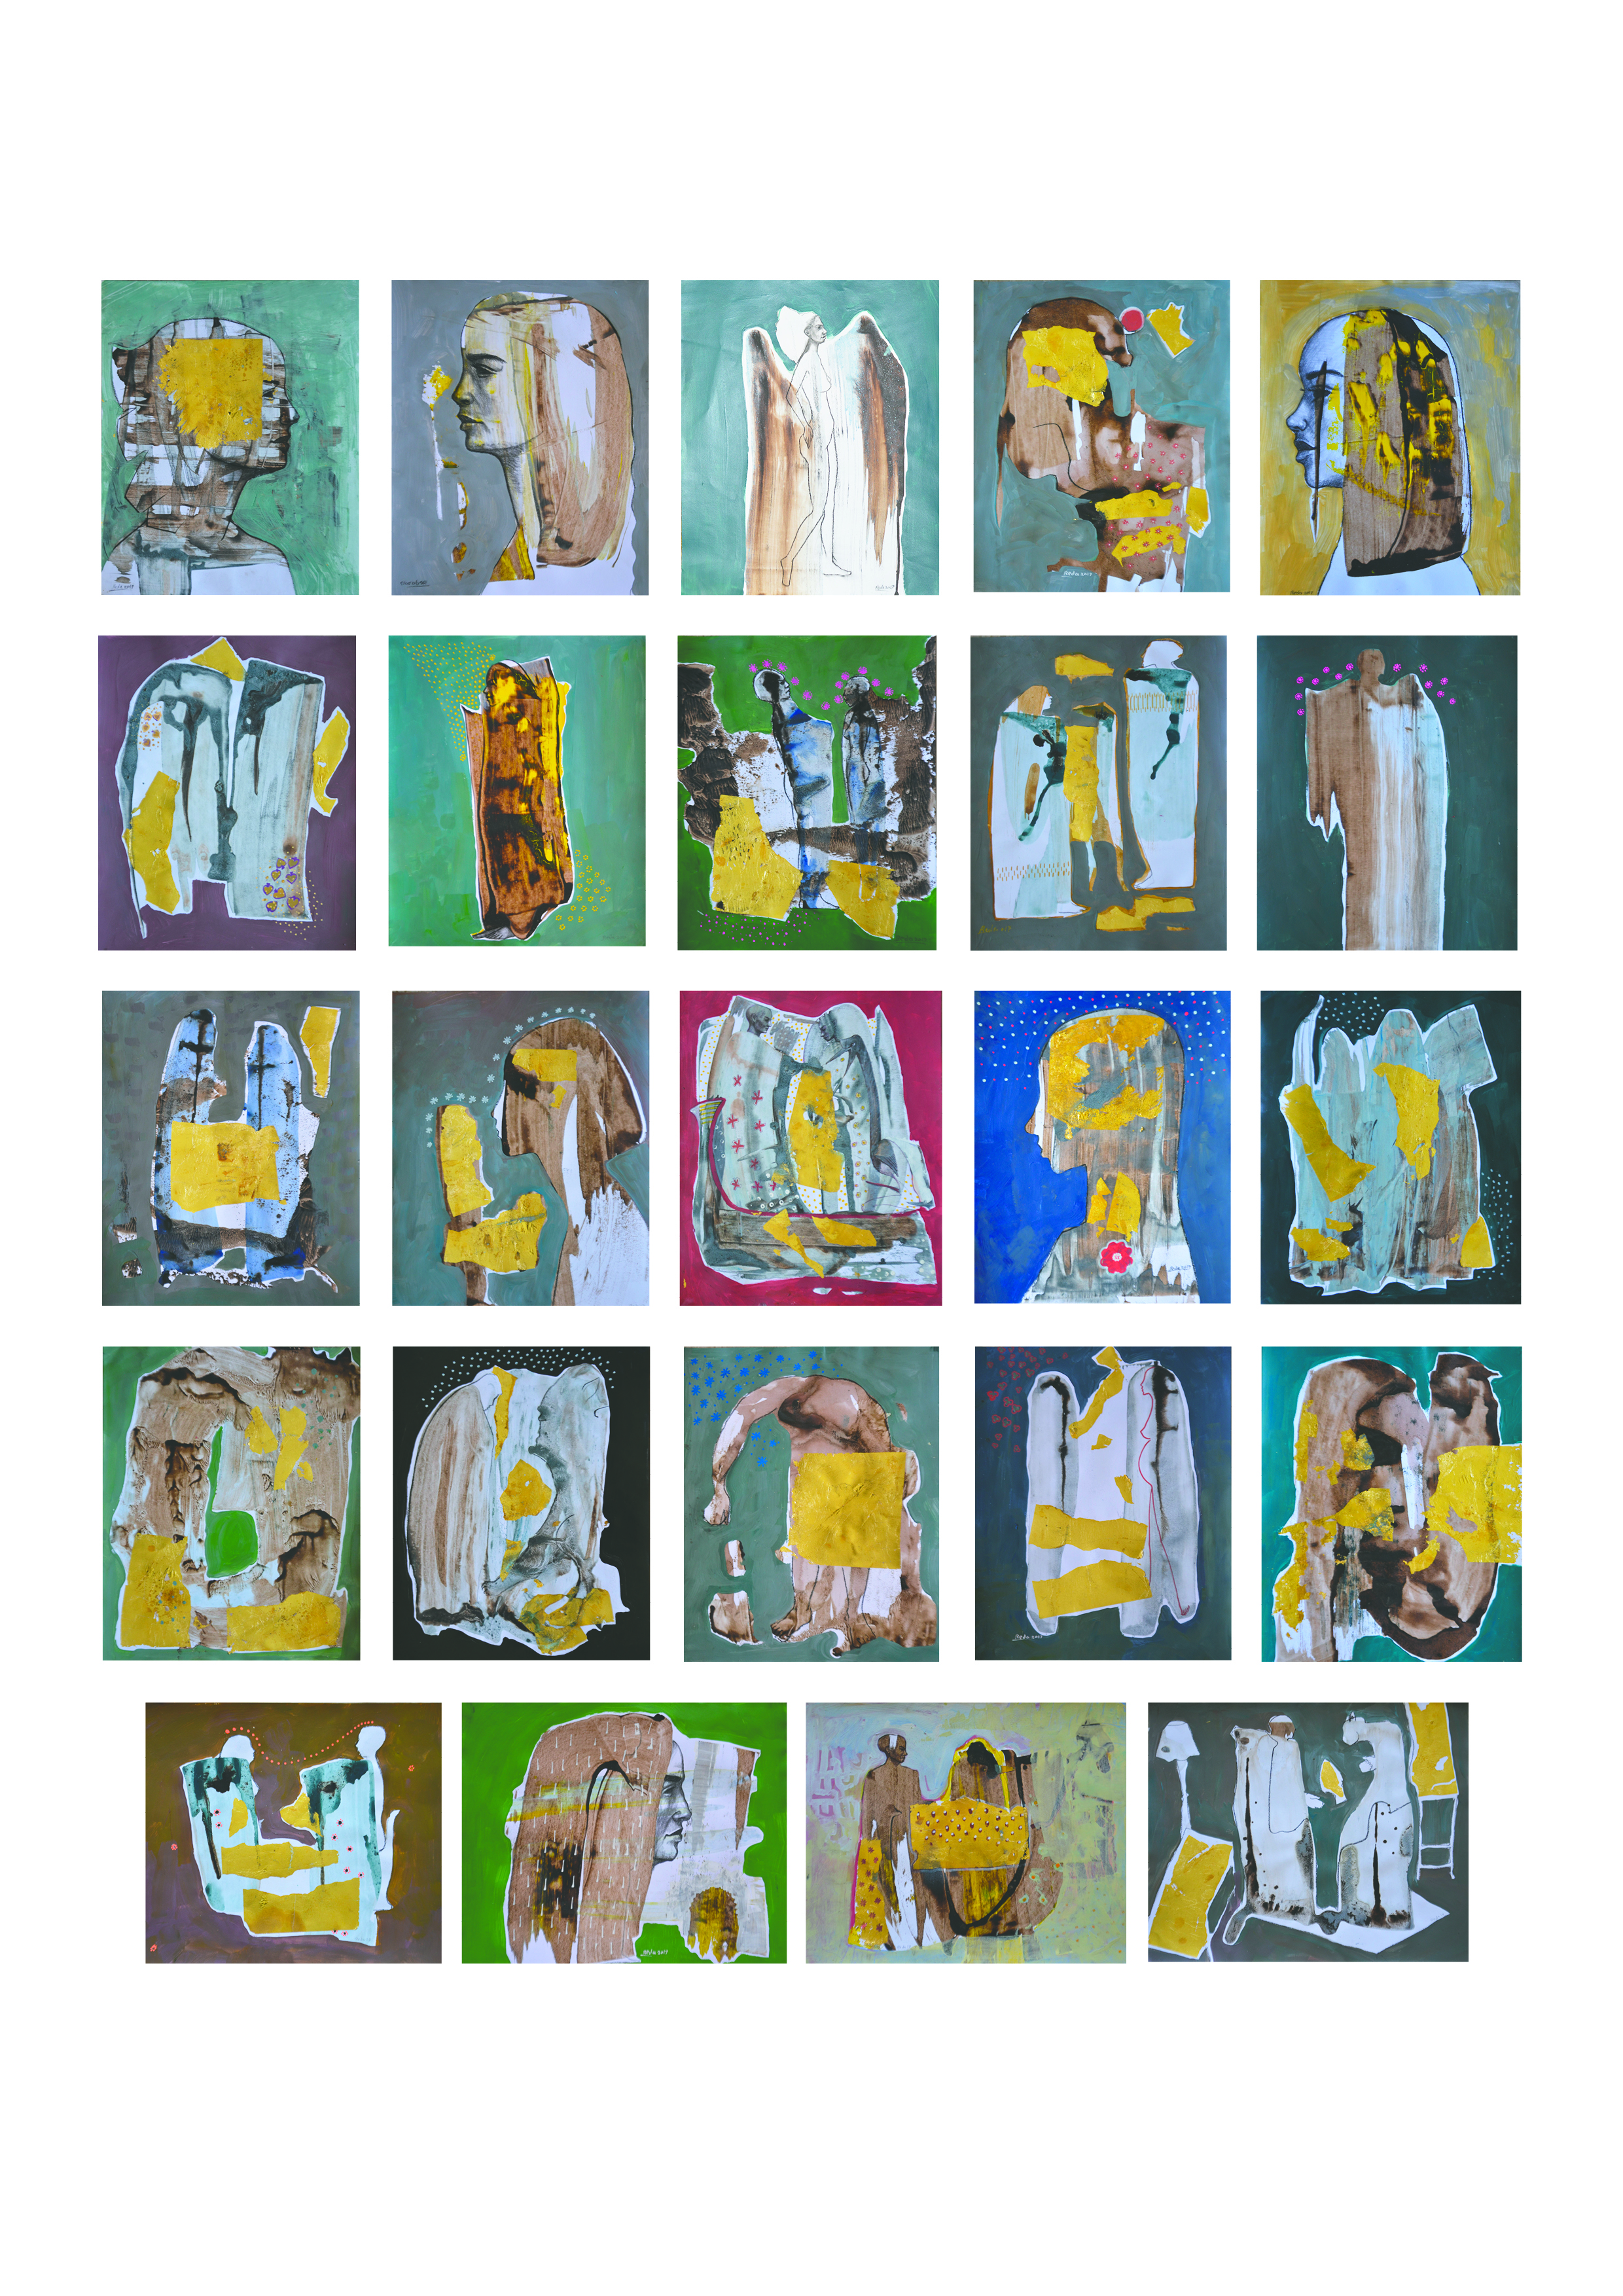 Nostalgia, acrylic and tempera on paper, 19 pieces 28.5 x 39 Inch each, 2013